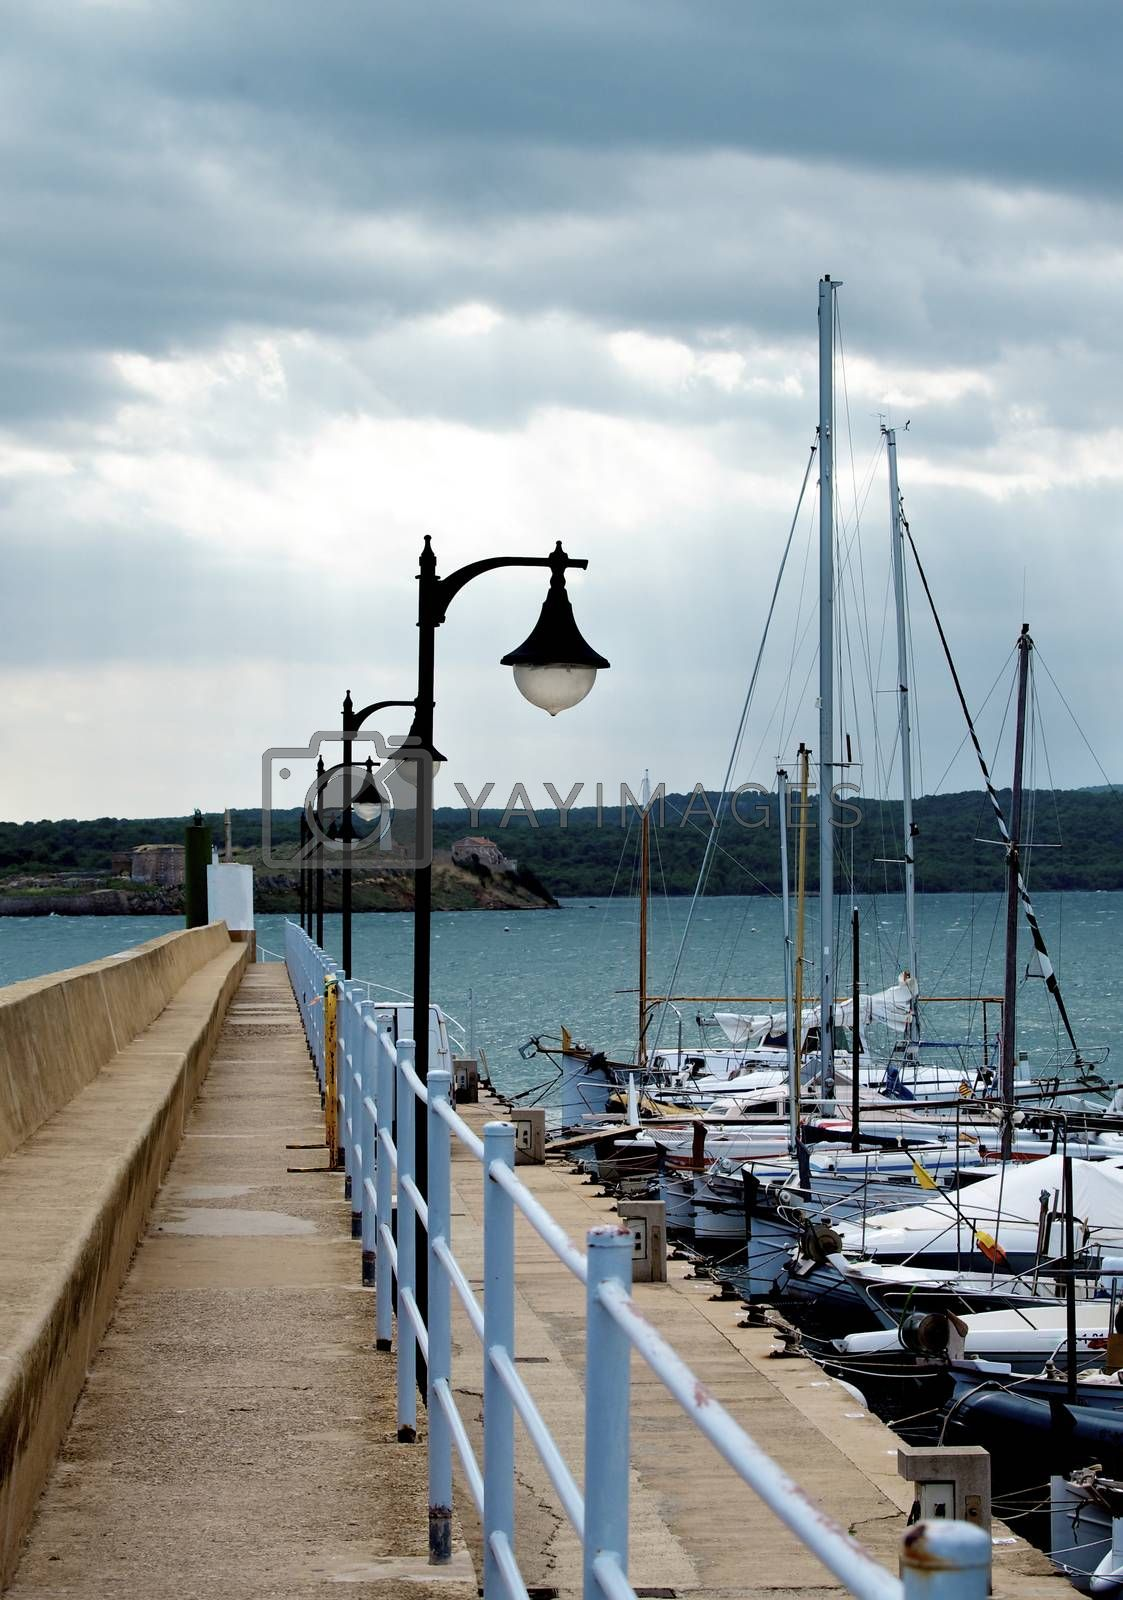 Pier with Street Lamps and Small Sailboats in Marina against Dramatic Sea Outdoors. Menorca, Balearic Islands